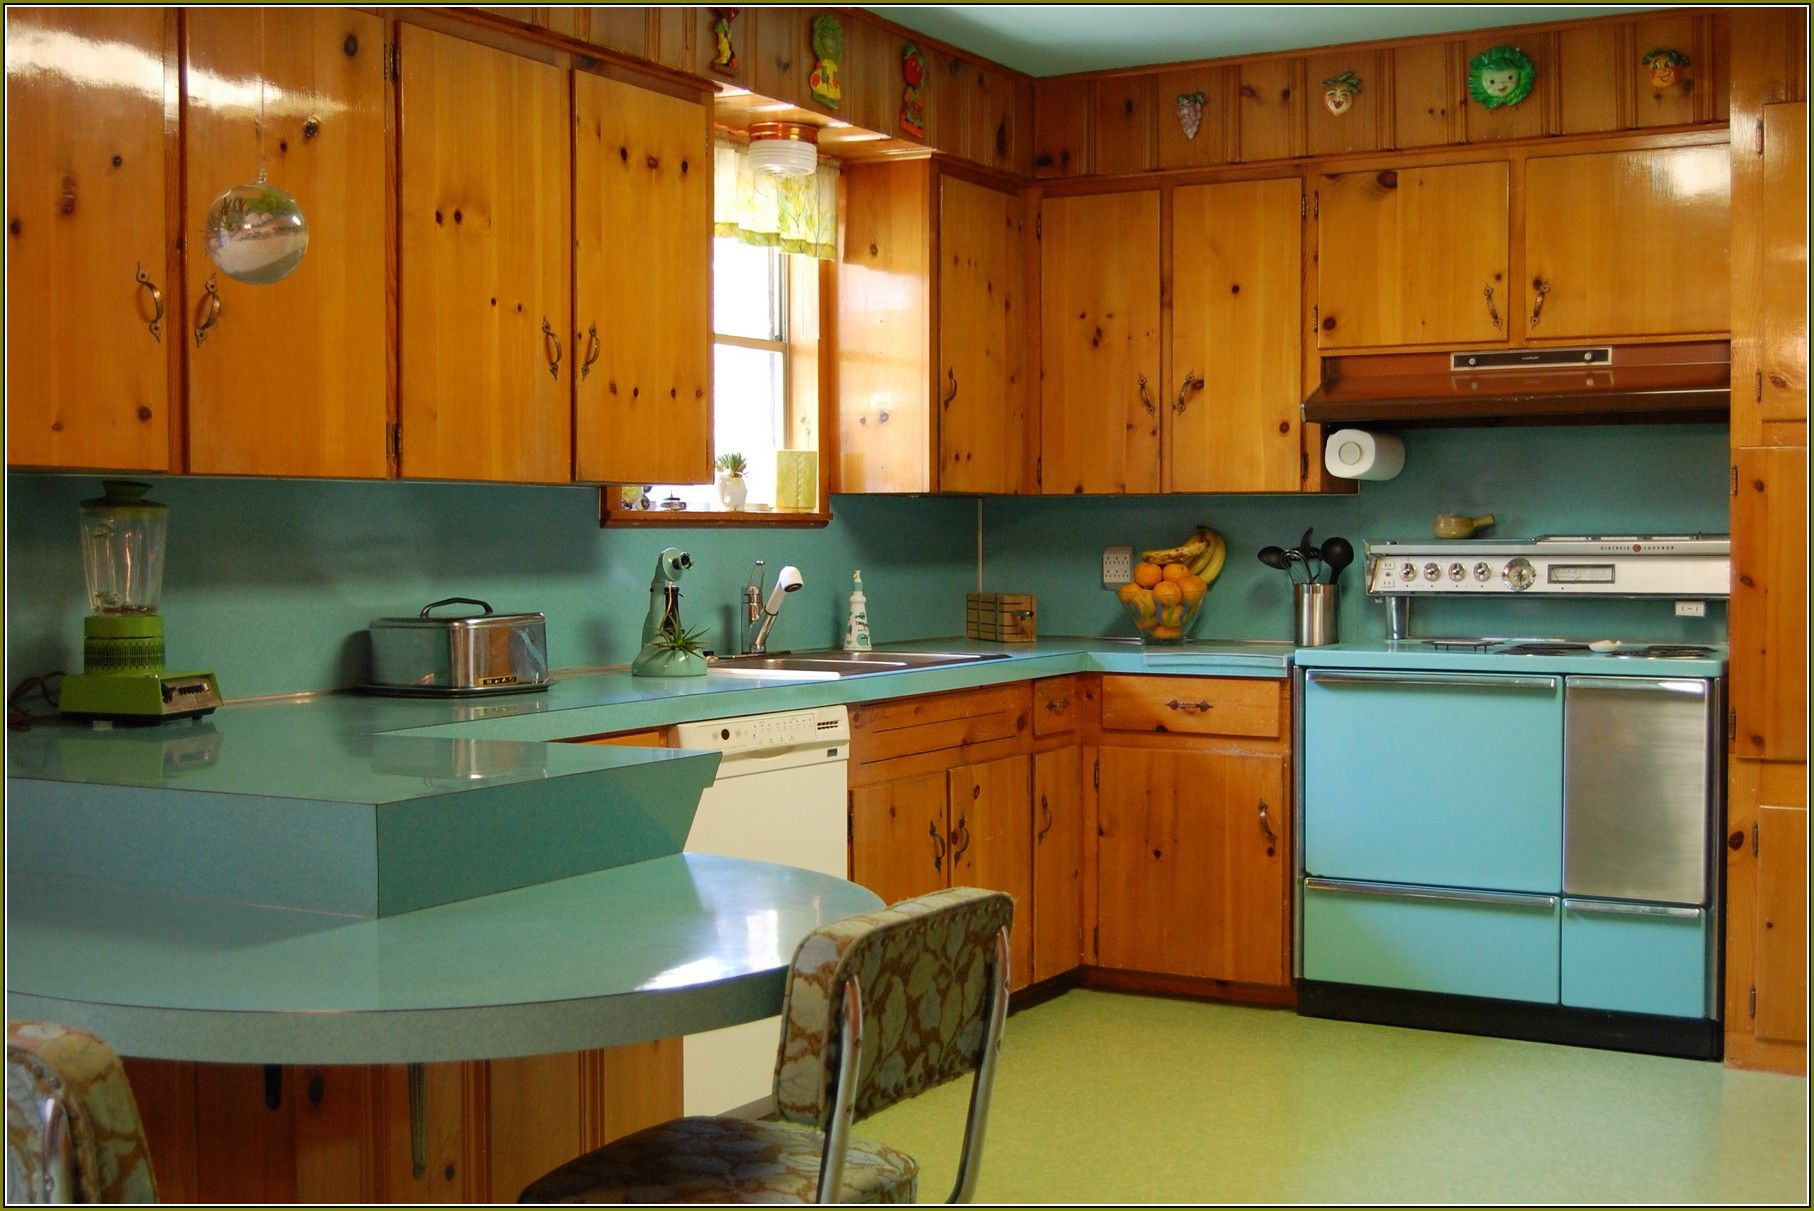 Vintage Knotty Pine Kitchen Cabinets Vintage Kitchen Pinterest Knotty Pine Kitchen Pine